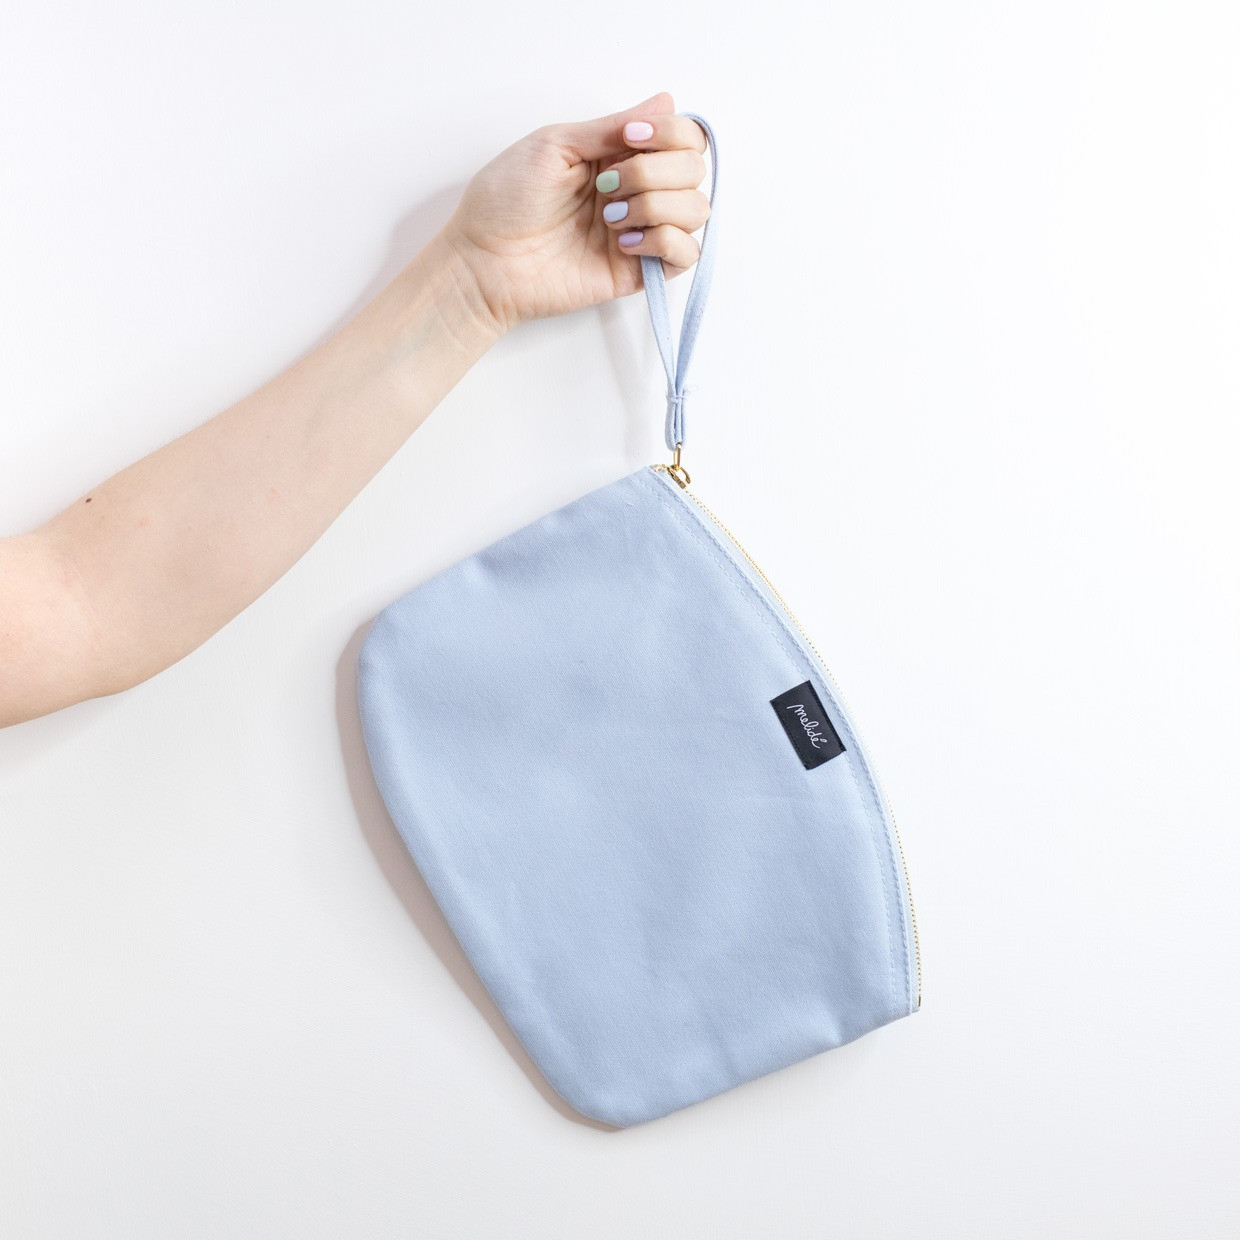 The ZIPPED POUCH L - Pesci